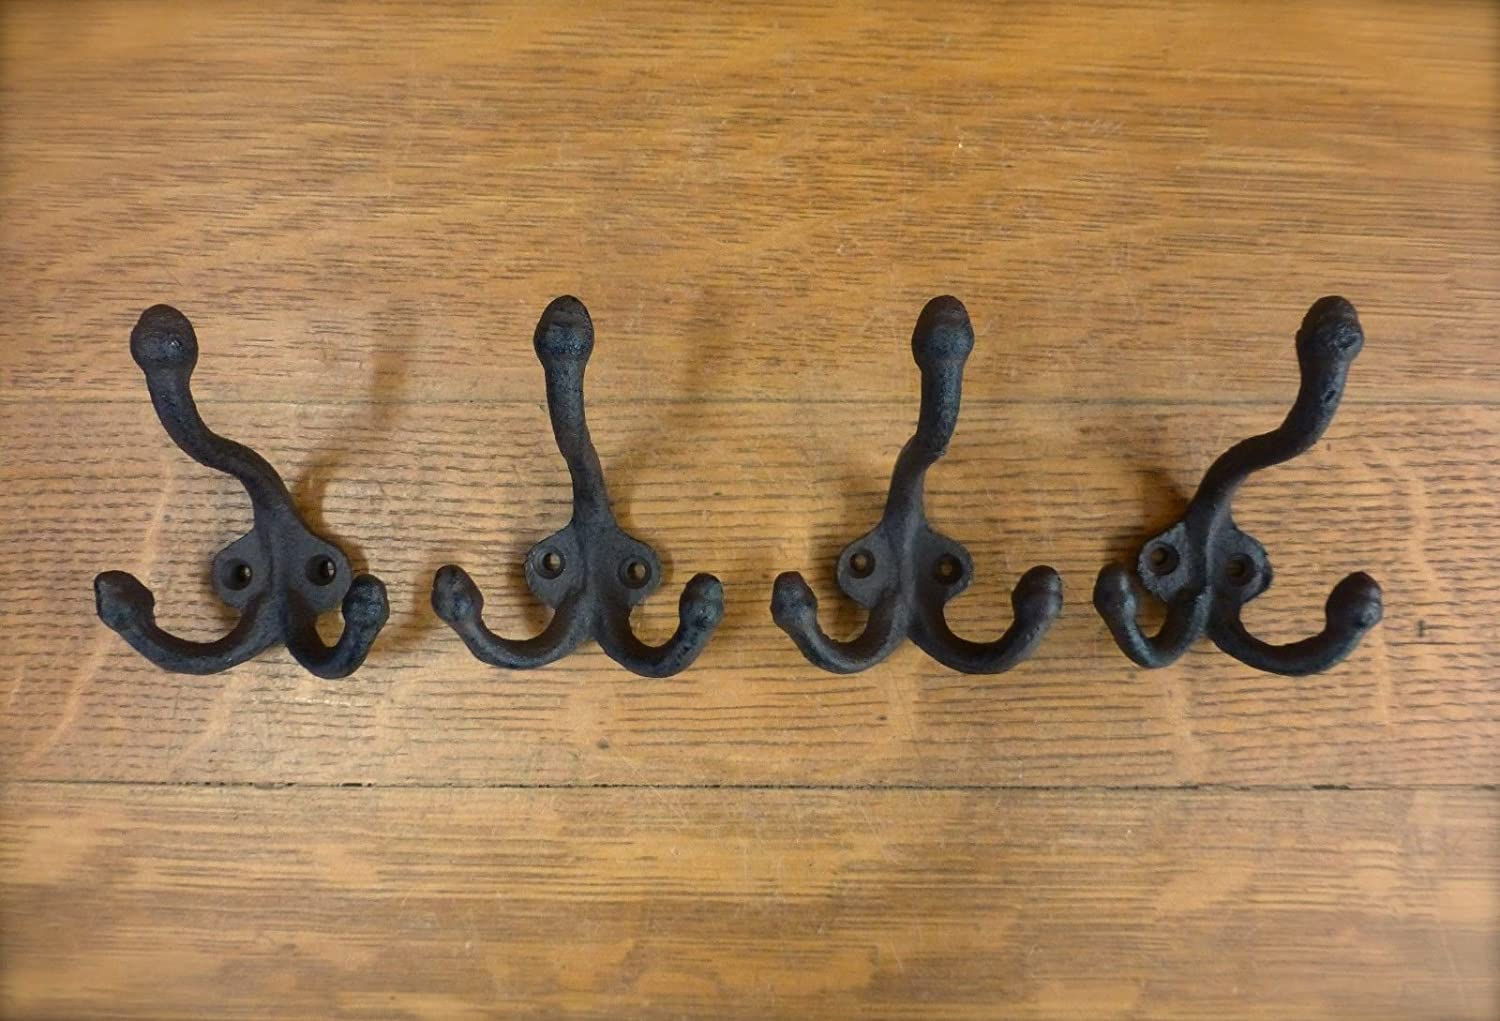 4 BROWN ANTIQUE-STYLE TRIPLE THREE COAT HOOK CAST IRON rustic wall hardware hat